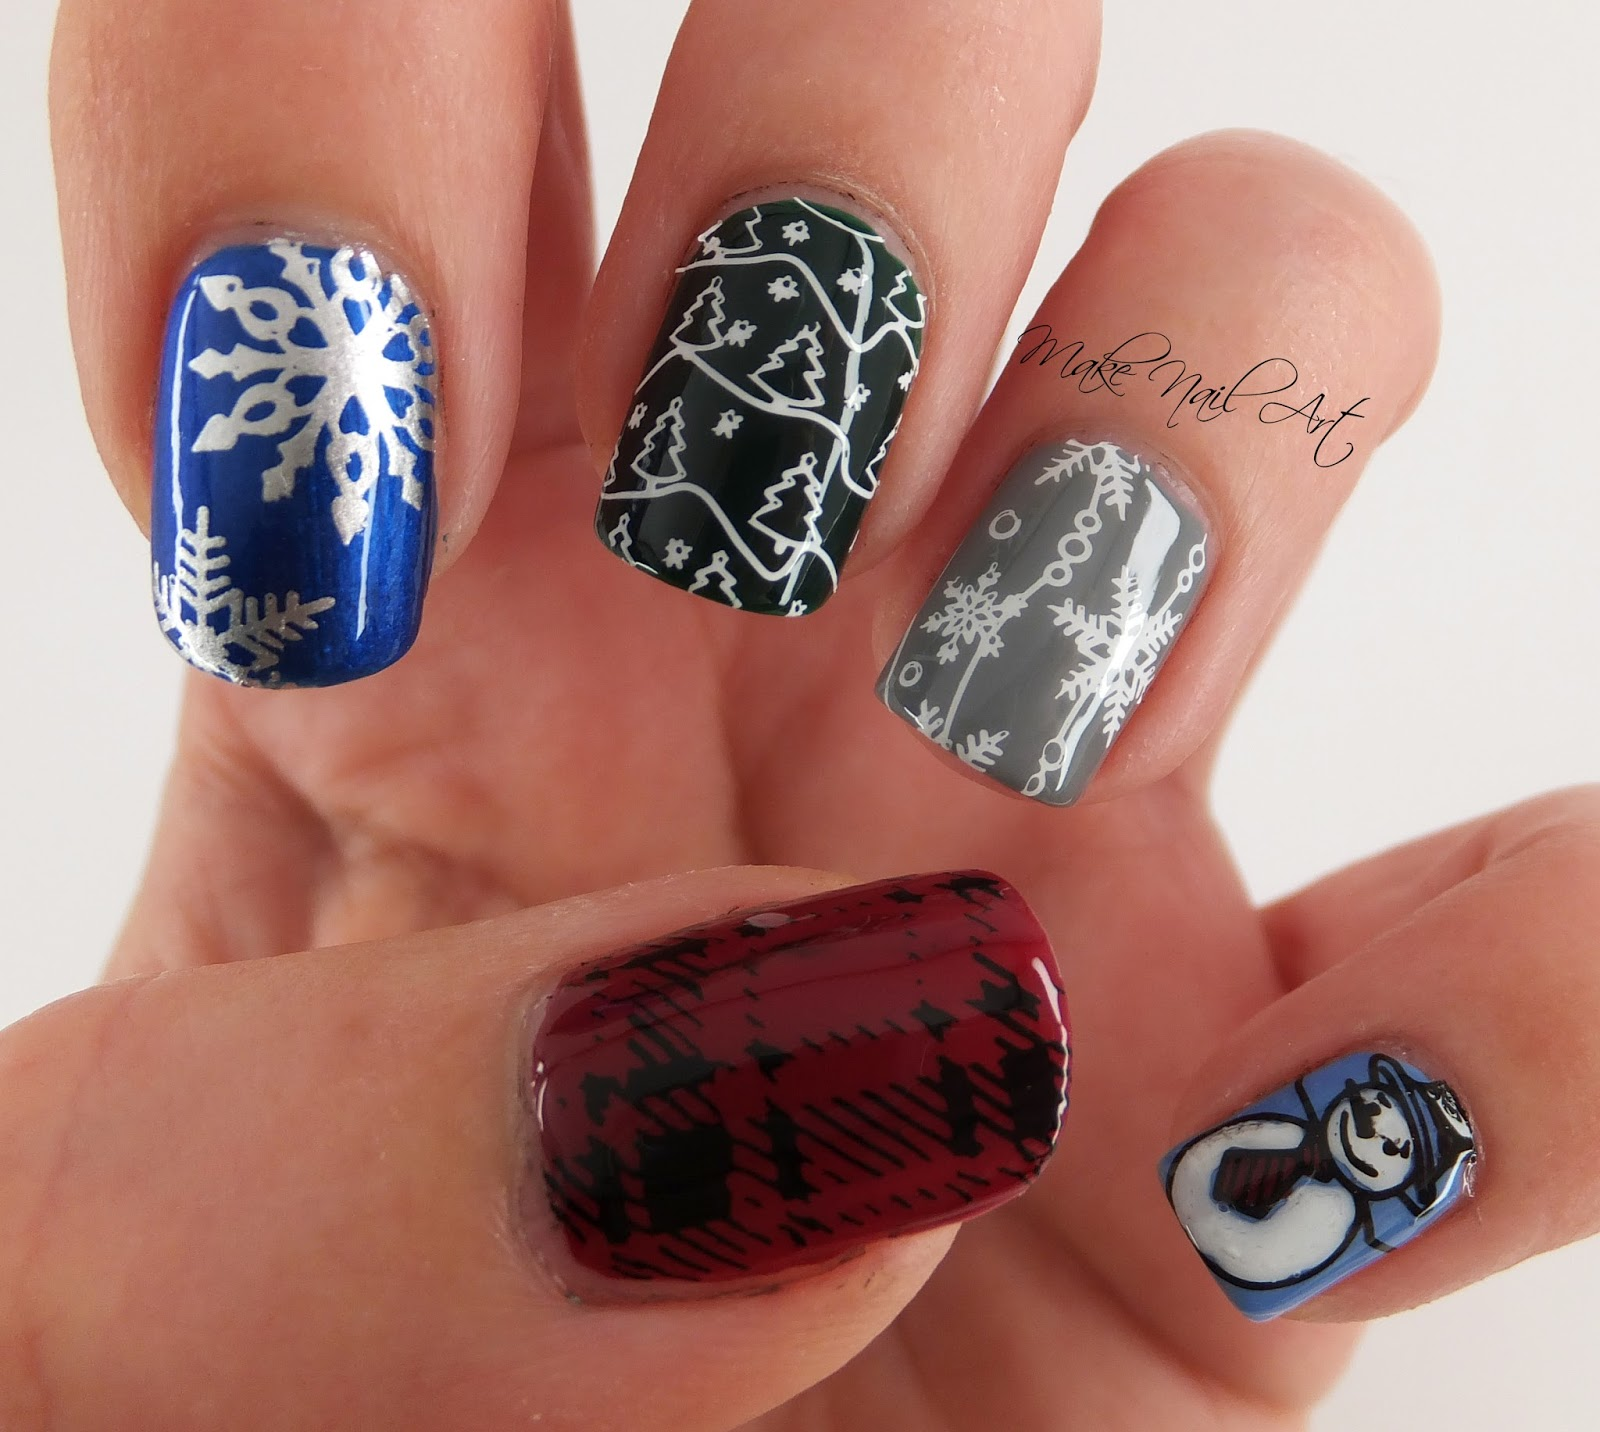 Make nail art winter vibes stamping nail art design tutorial it turns out something like a mix and match winter inspired nail design and im happy with it the stamping plates worked fine with no problems prinsesfo Choice Image